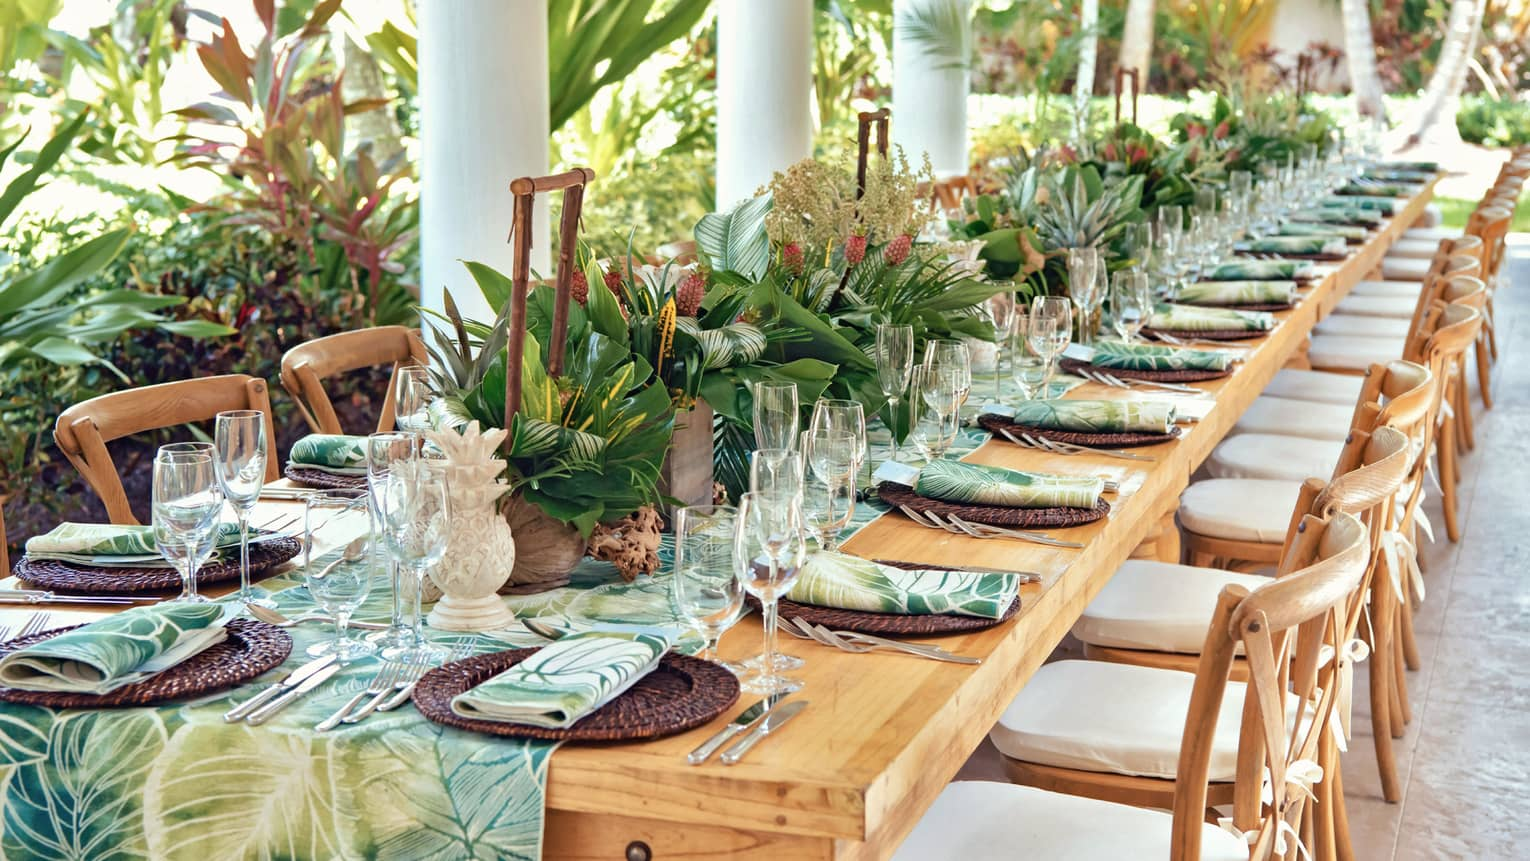 Versailles outdoor terrace with a set table with a green leafy runner and napkins